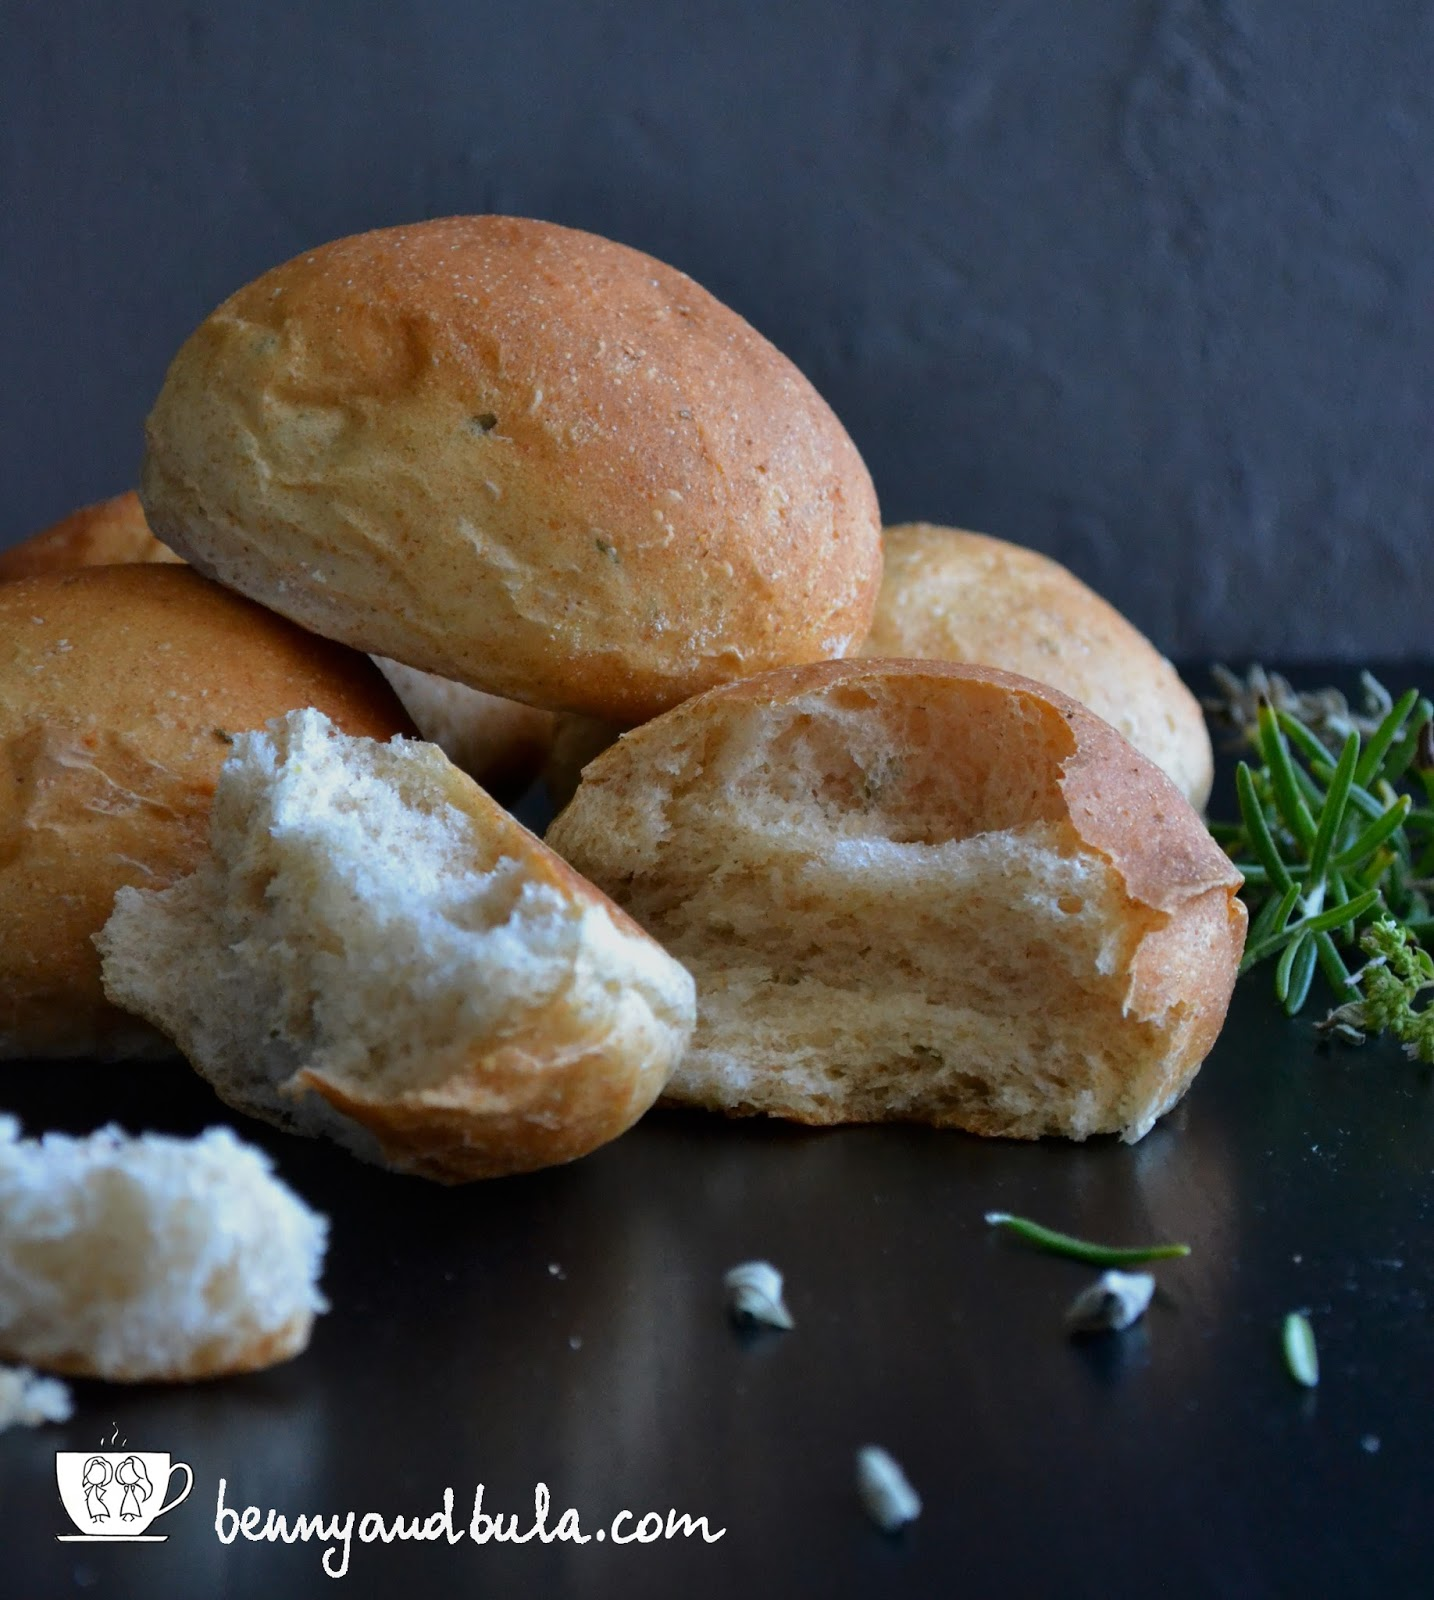 ricetta panini integrali aromatizzati con rosmarino e origano/Spiced whole grain bread buns recipe